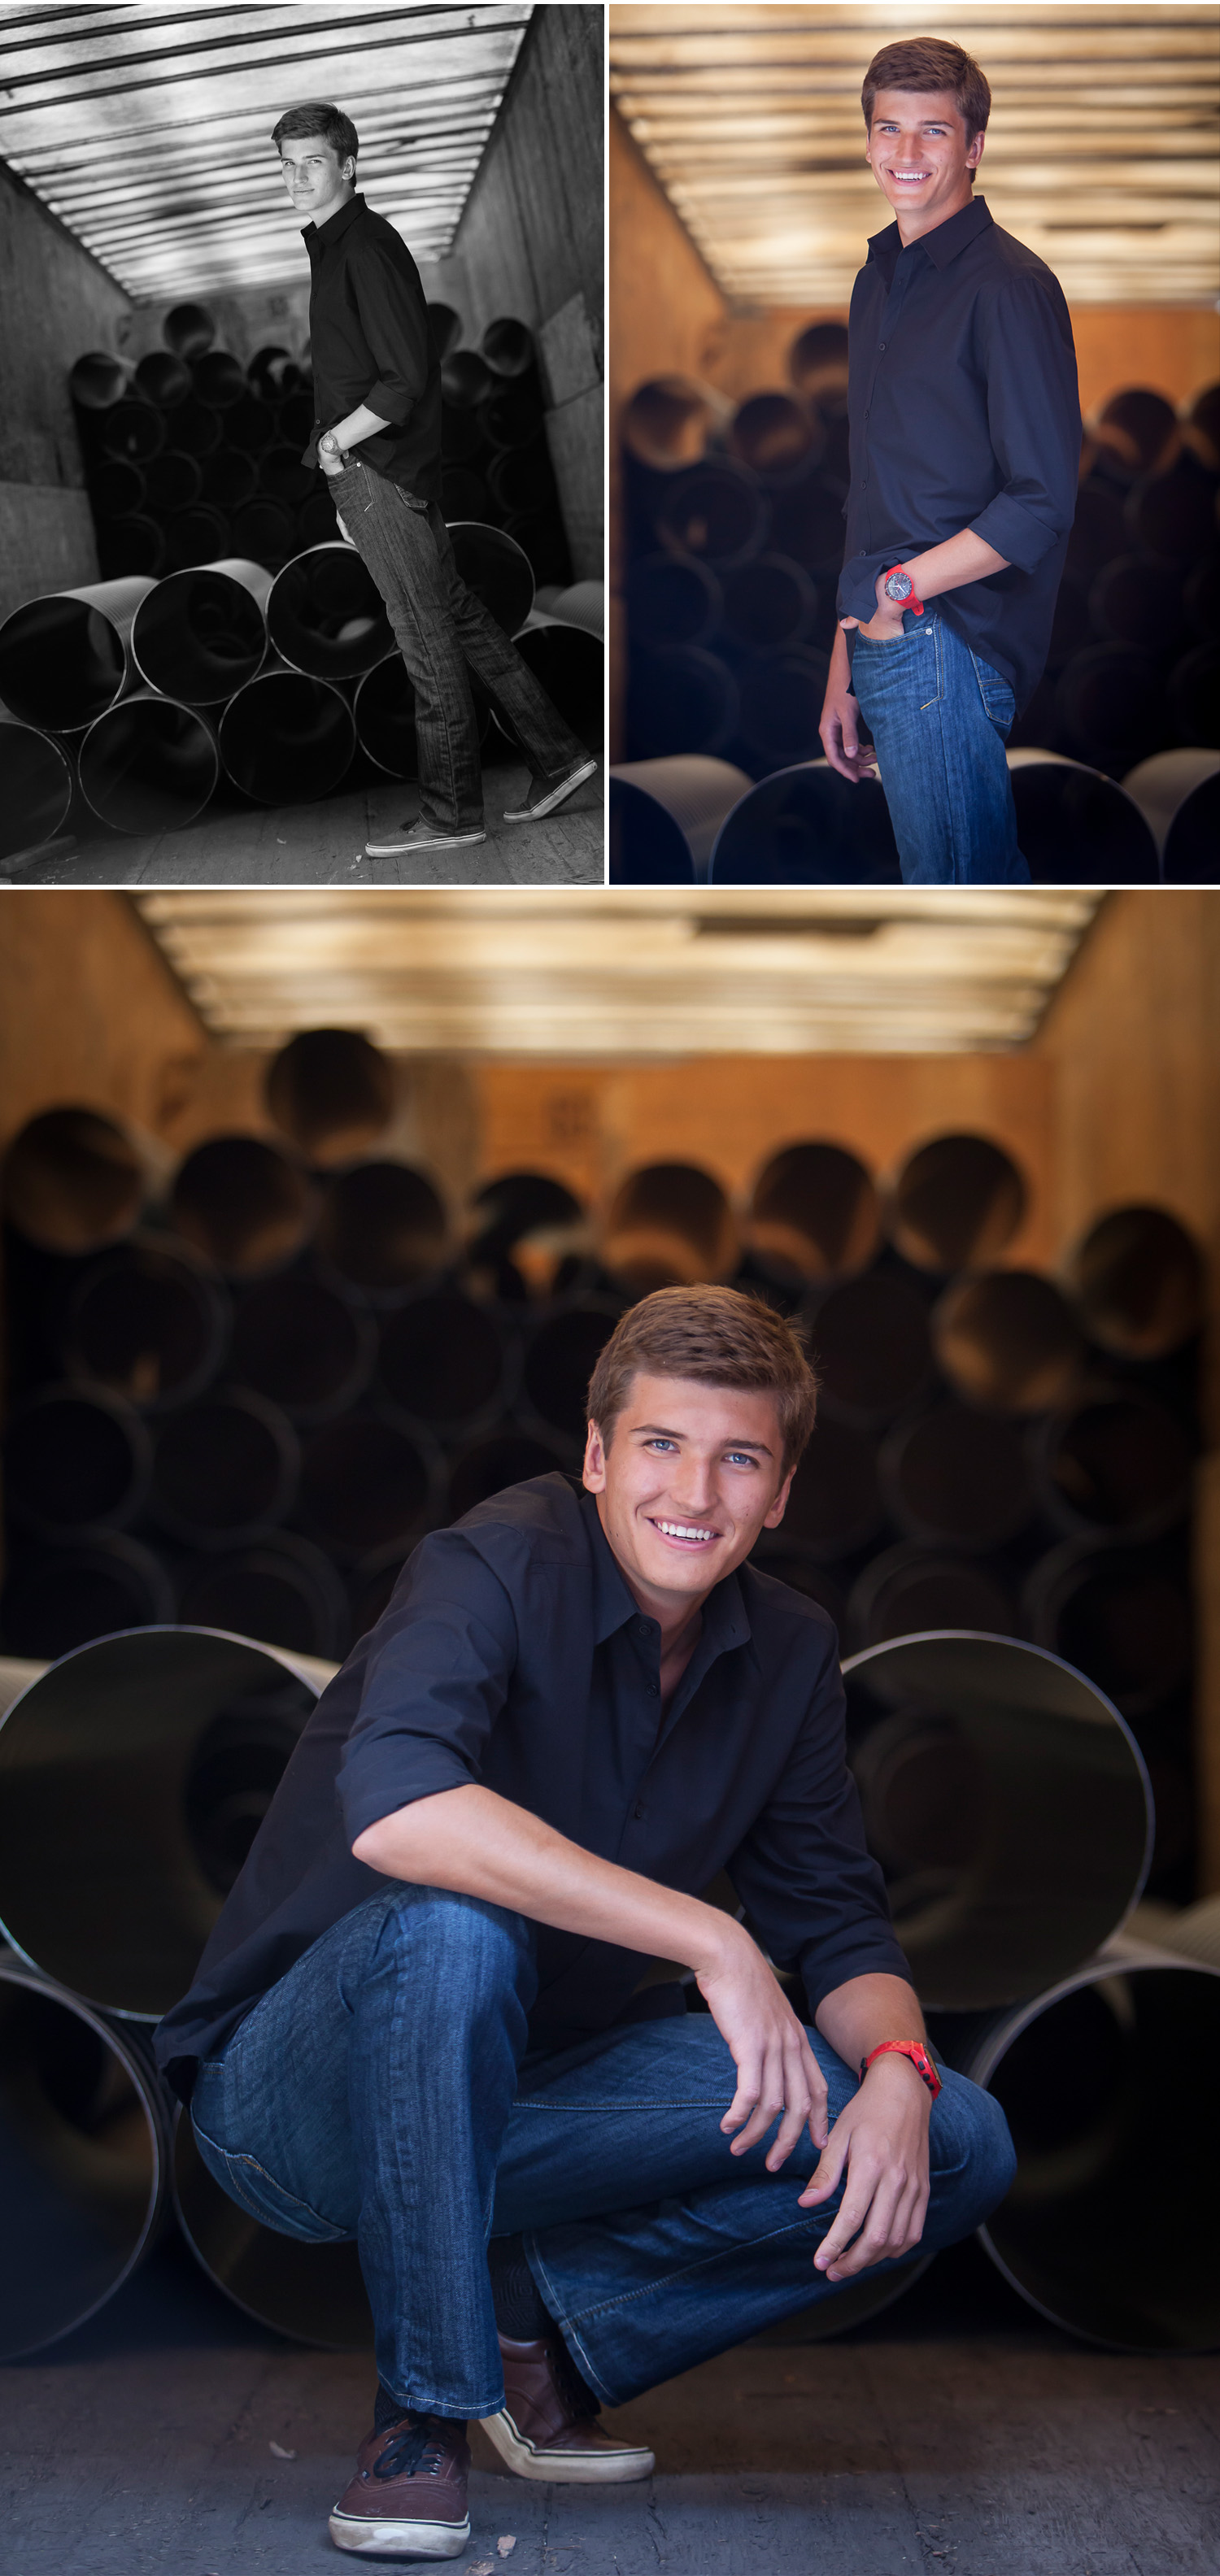 High school senior boy photos in Denver with photographer Jennifer Koskinen | Merritt Portrait Studio